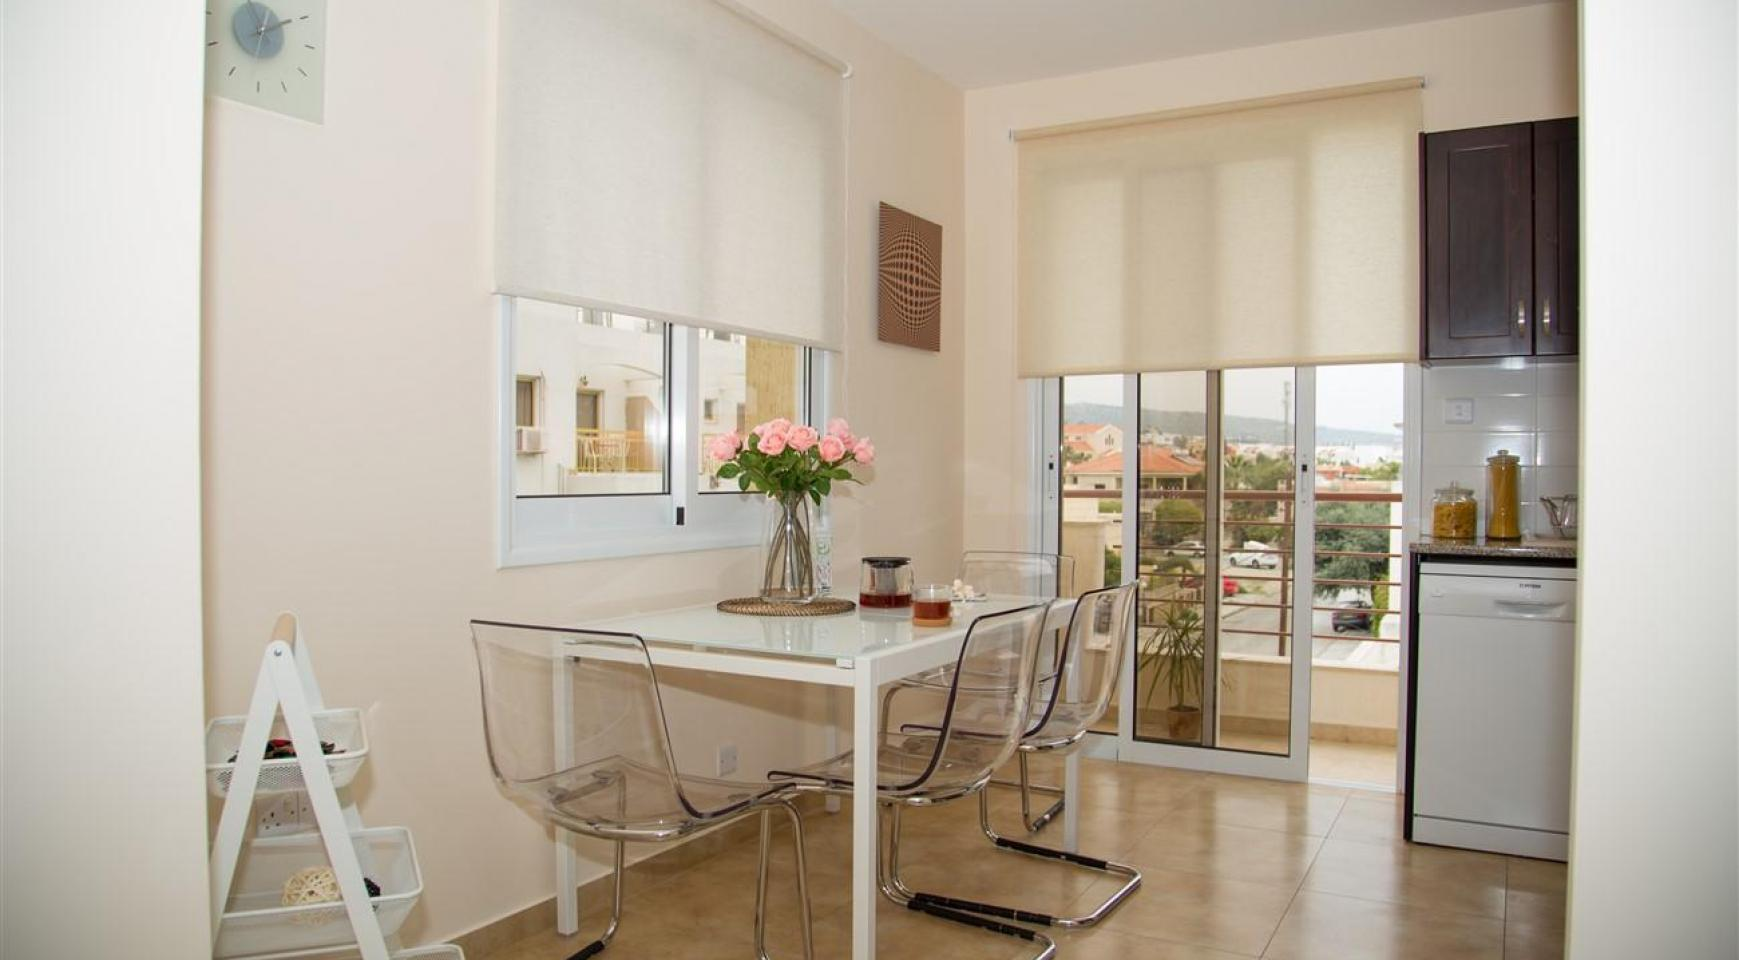 Luxury 2 Bedroom Apartment Frida 201 in the Tourist Area - 5